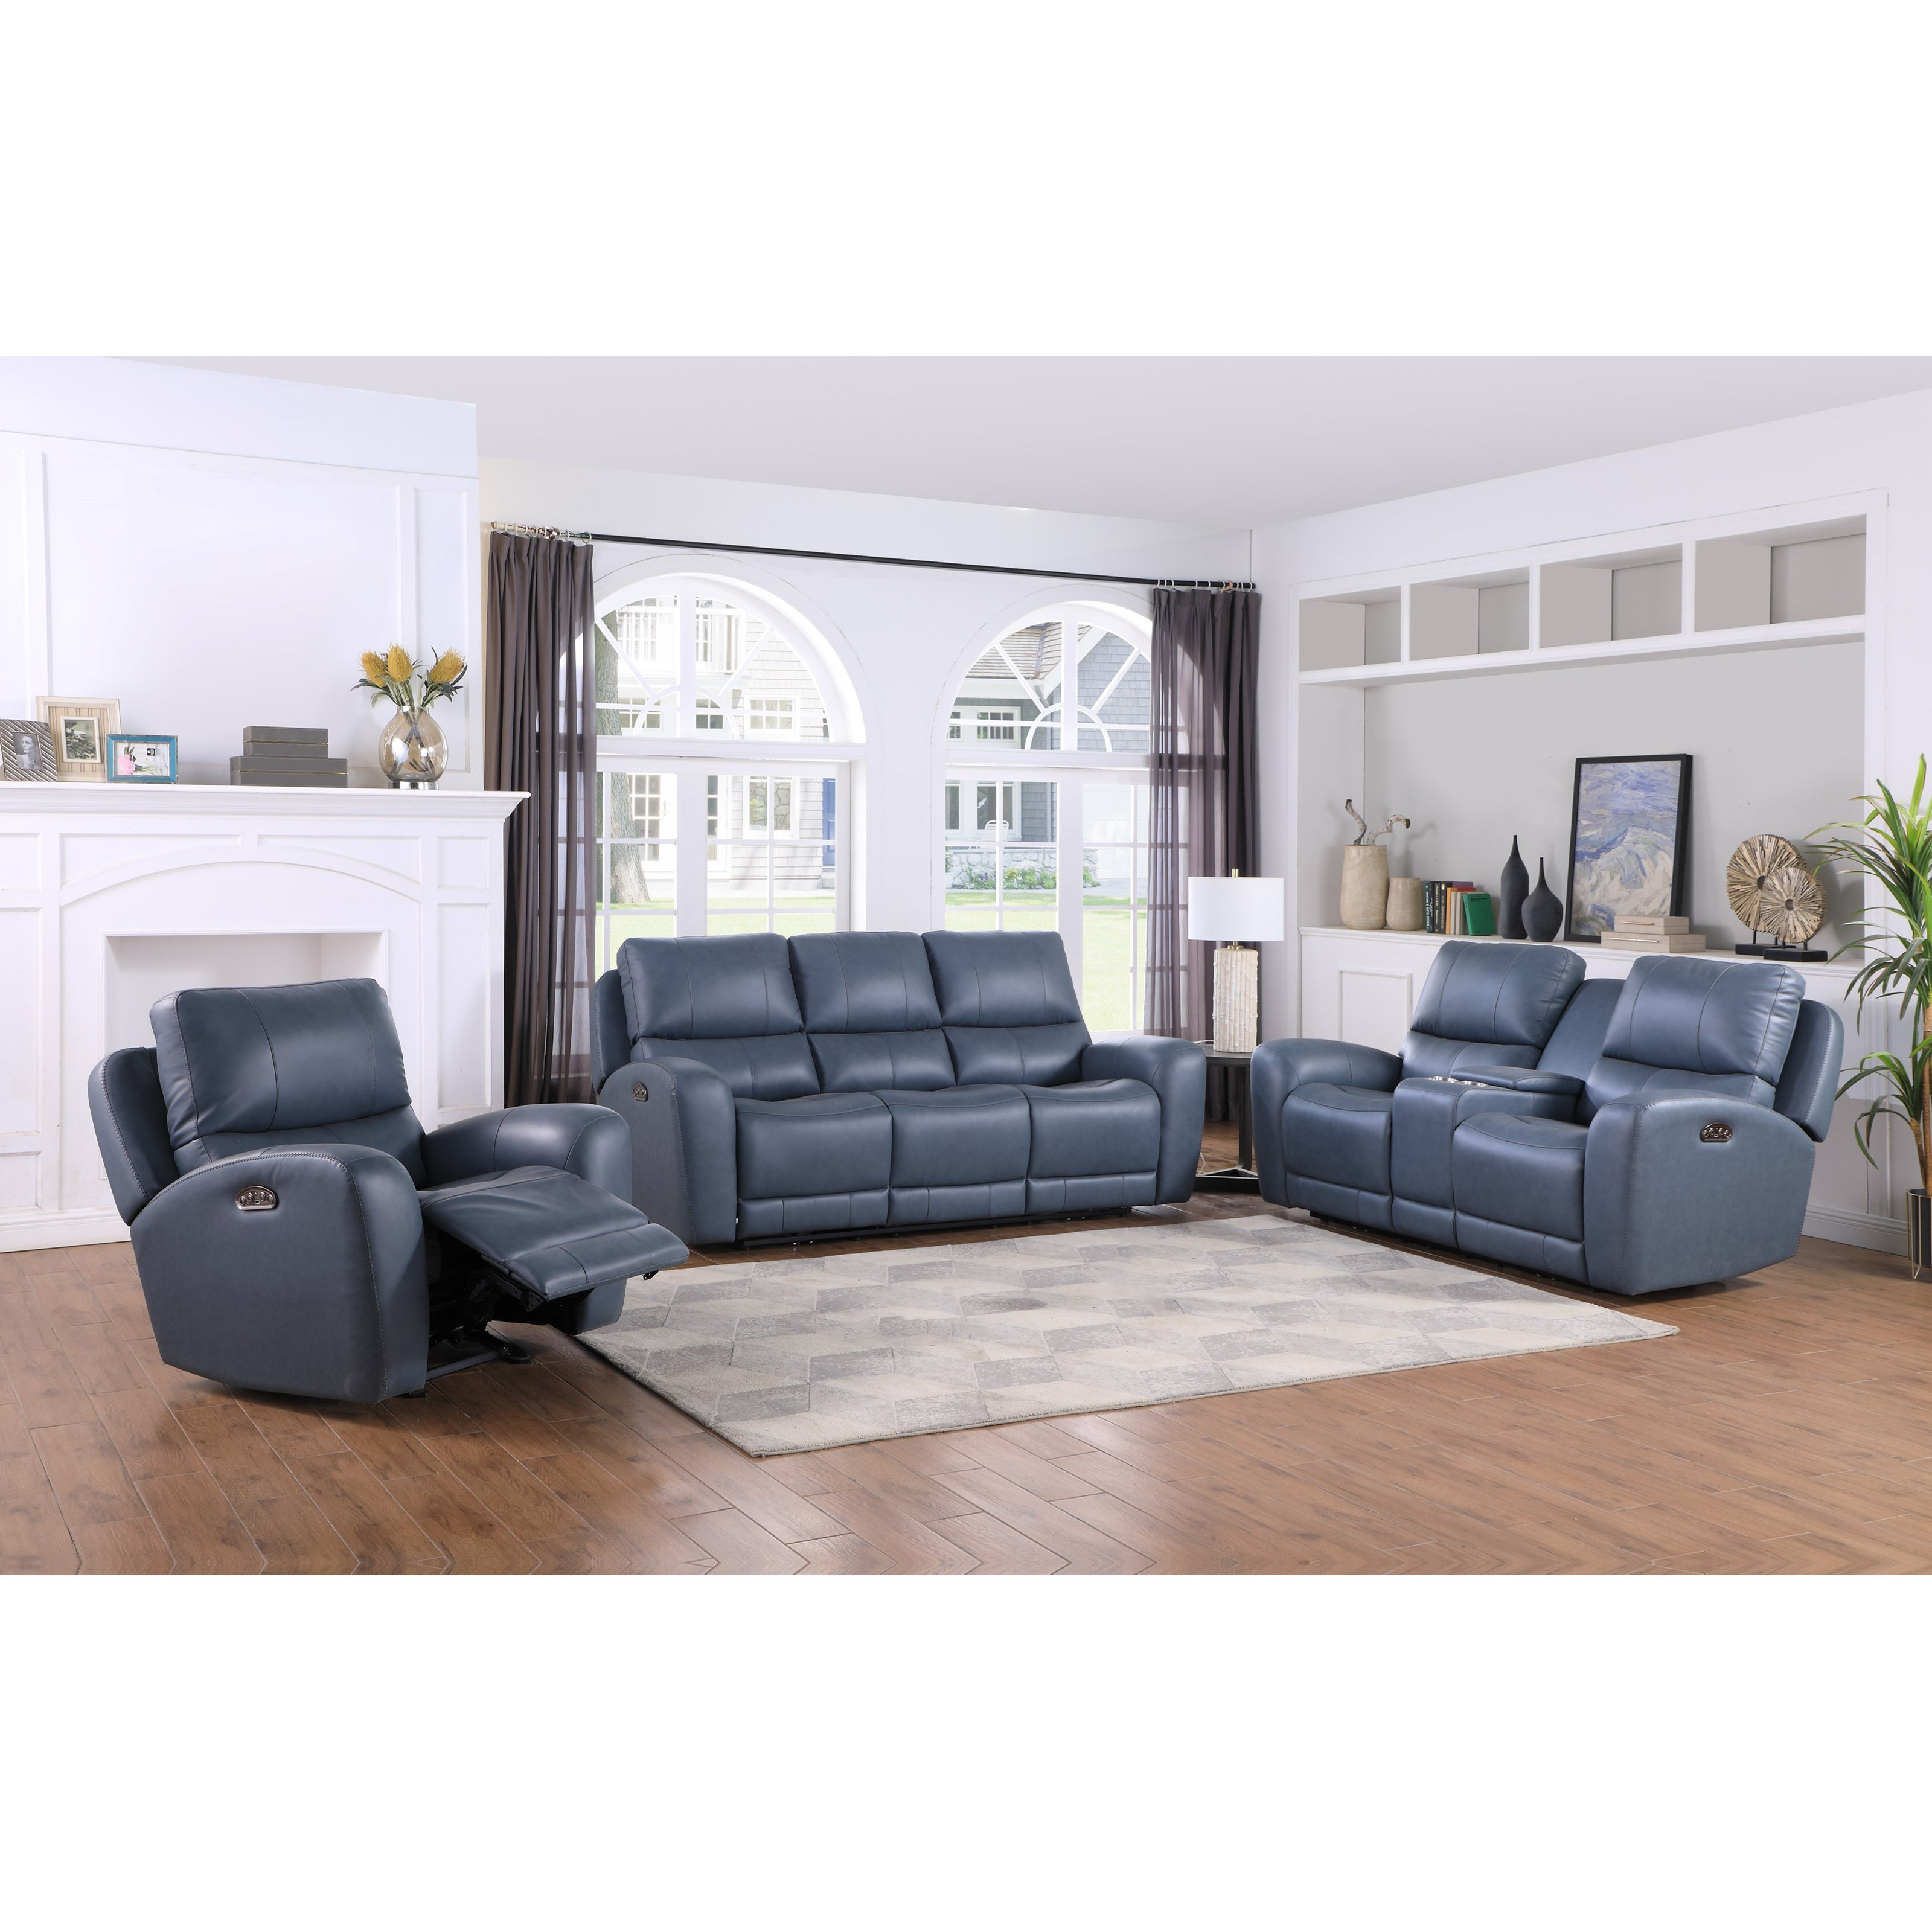 Belair Reclining Living Room Group by Leather Italia USA at Home Furnishings Direct